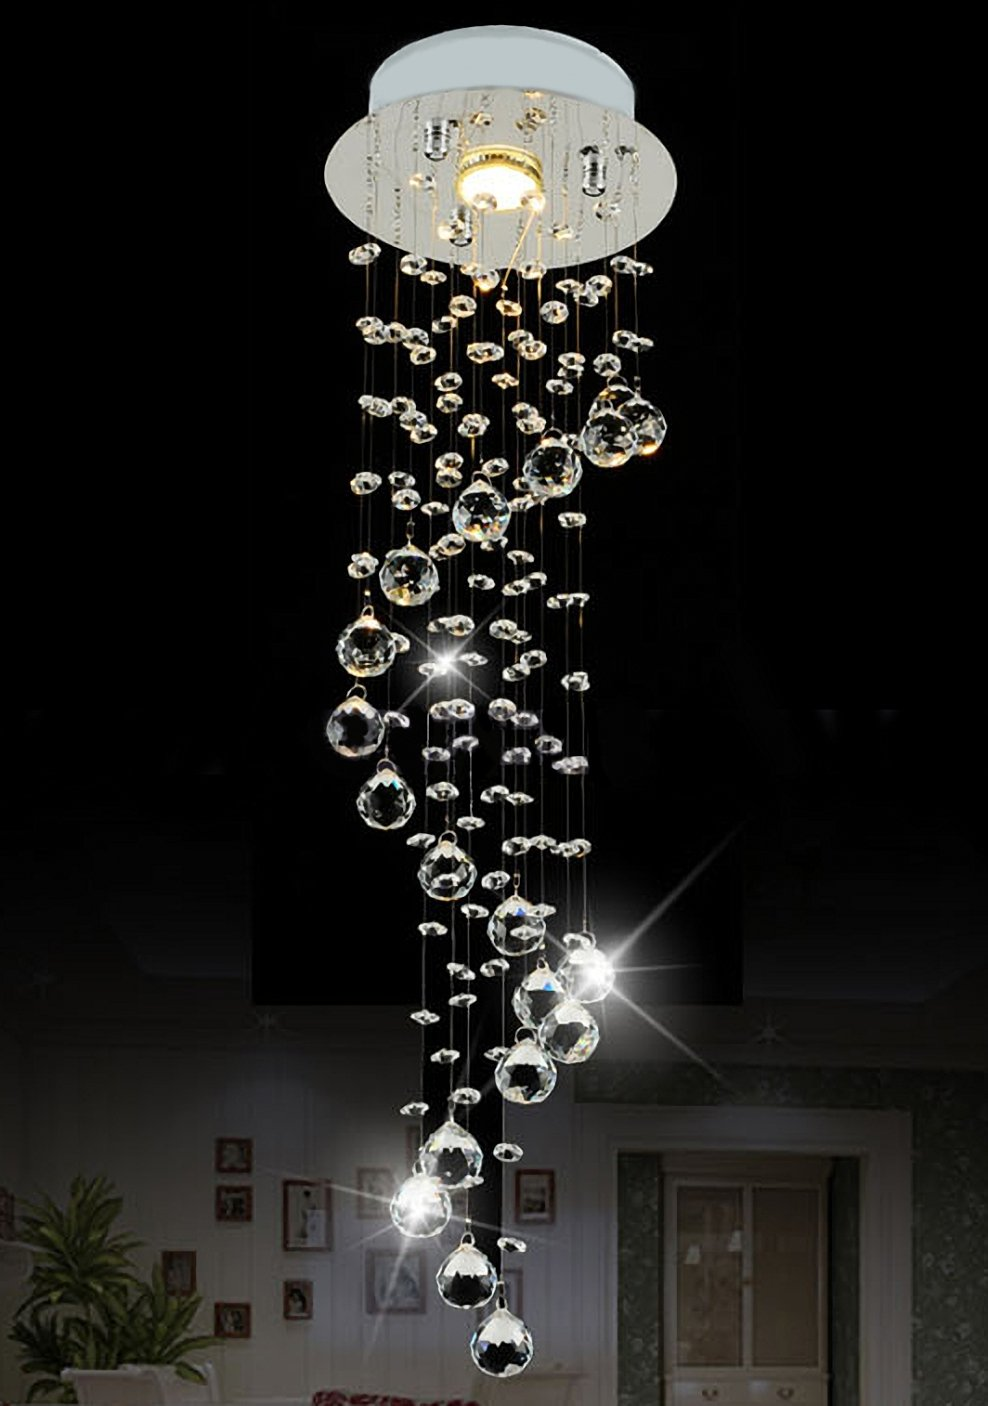 Siljoy Raindrop Chandelier Lighting Modern Crystal Ceiling Lighting D7.9'' x H29.5''